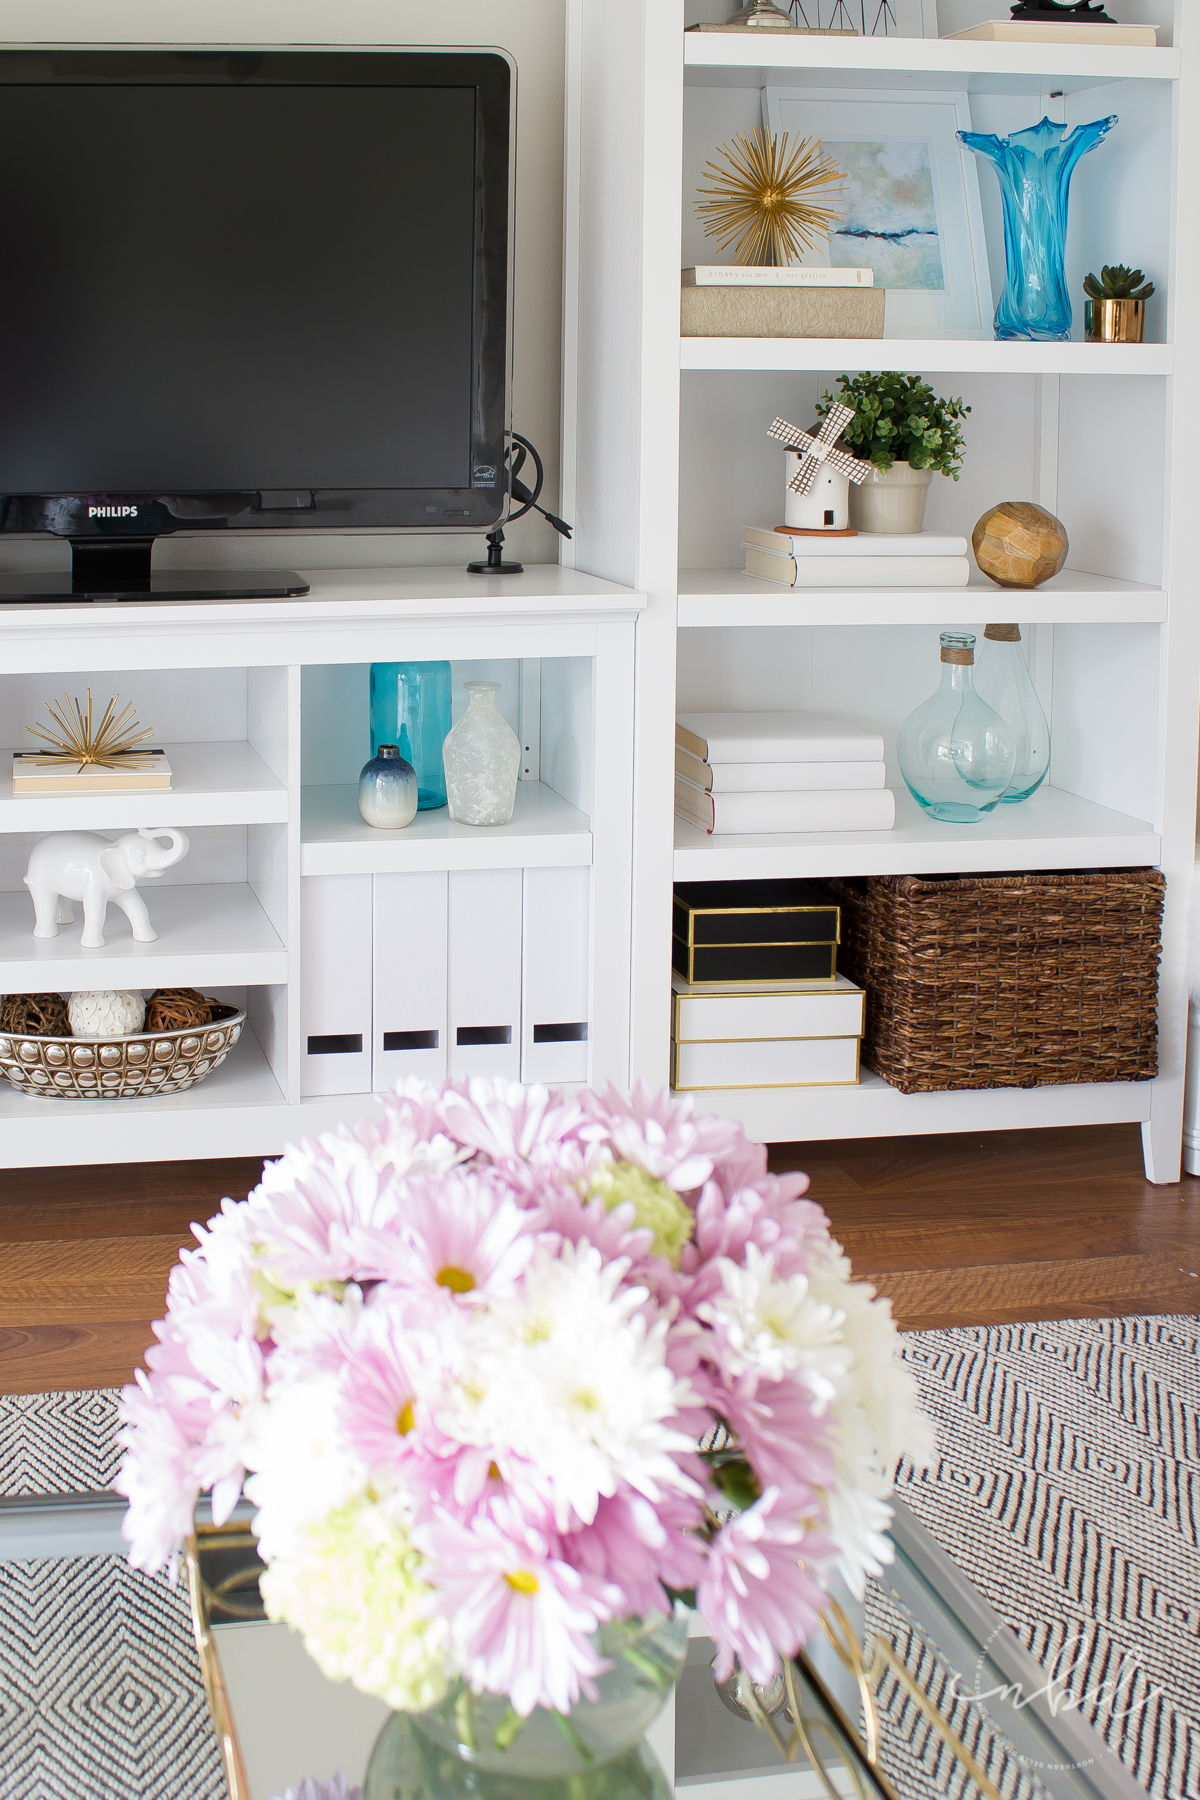 Have you ever stared at gorgeous bookshelves on Pinterest and wondered how to recreate the look in your own home? Here's the secret to styling bookshelves! #bookshelfstylingclass #decor